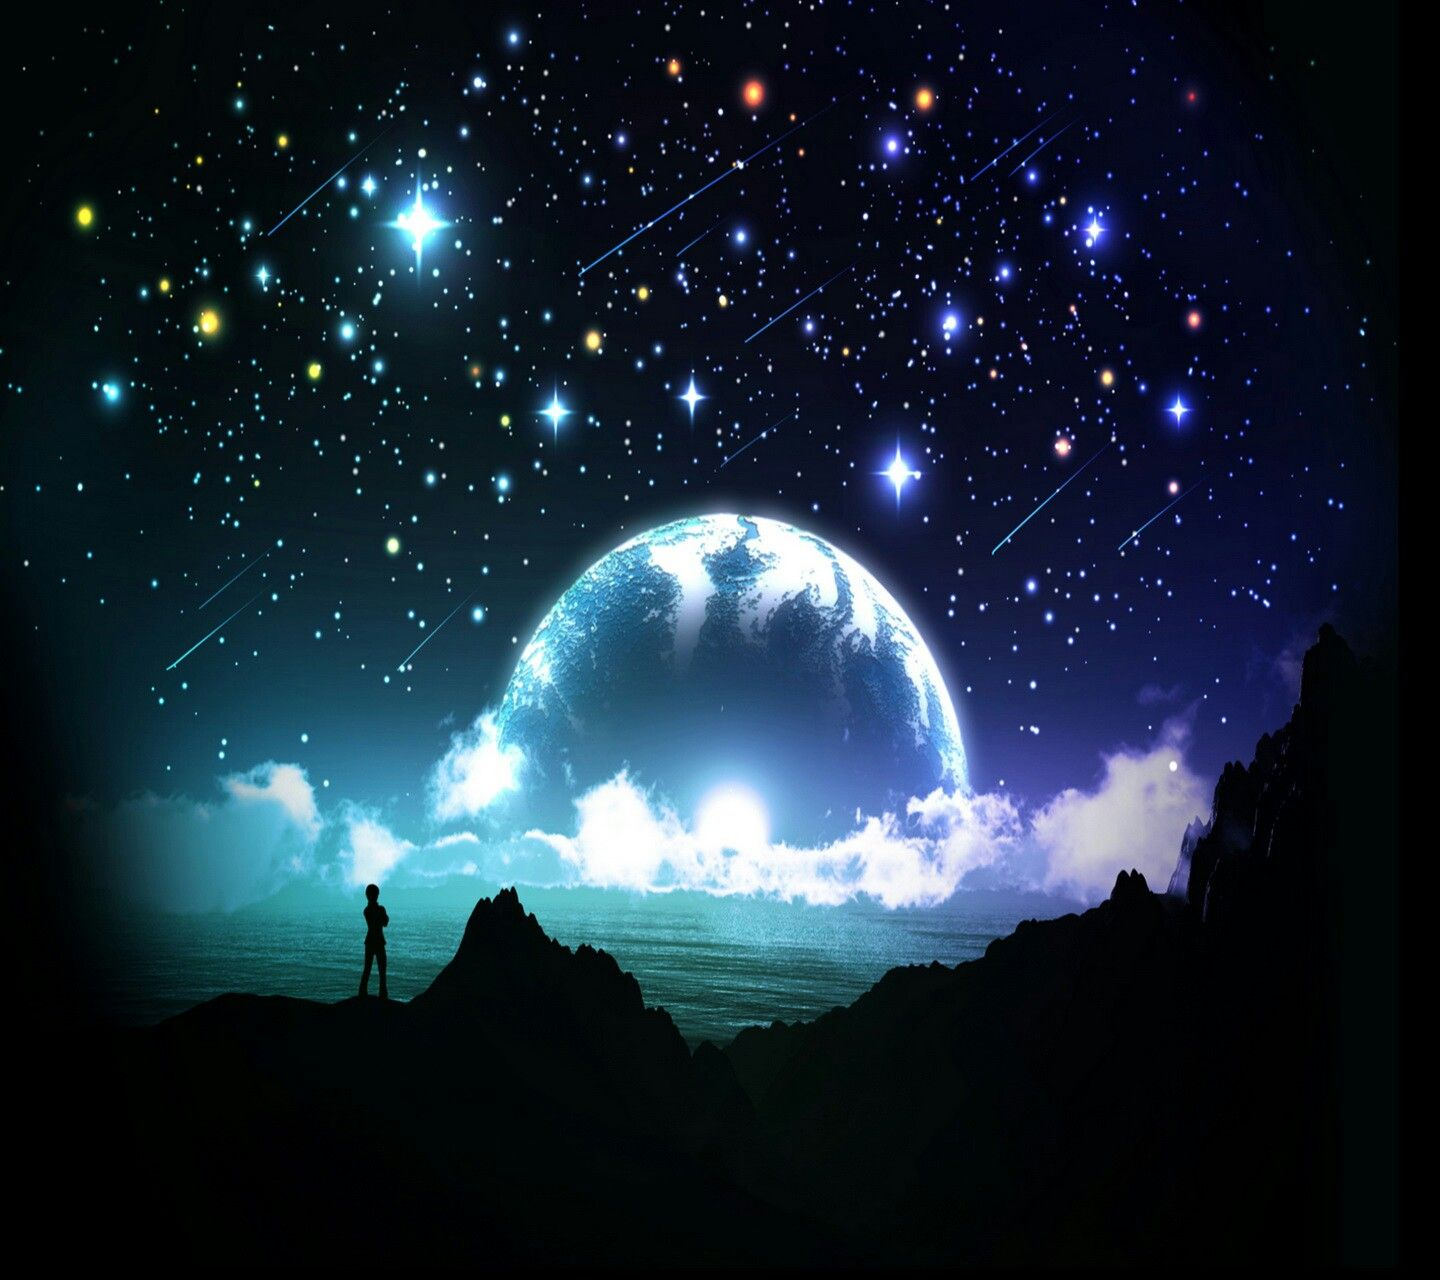 Pin by Cassy Chester on Moon and Sun Night sky stars